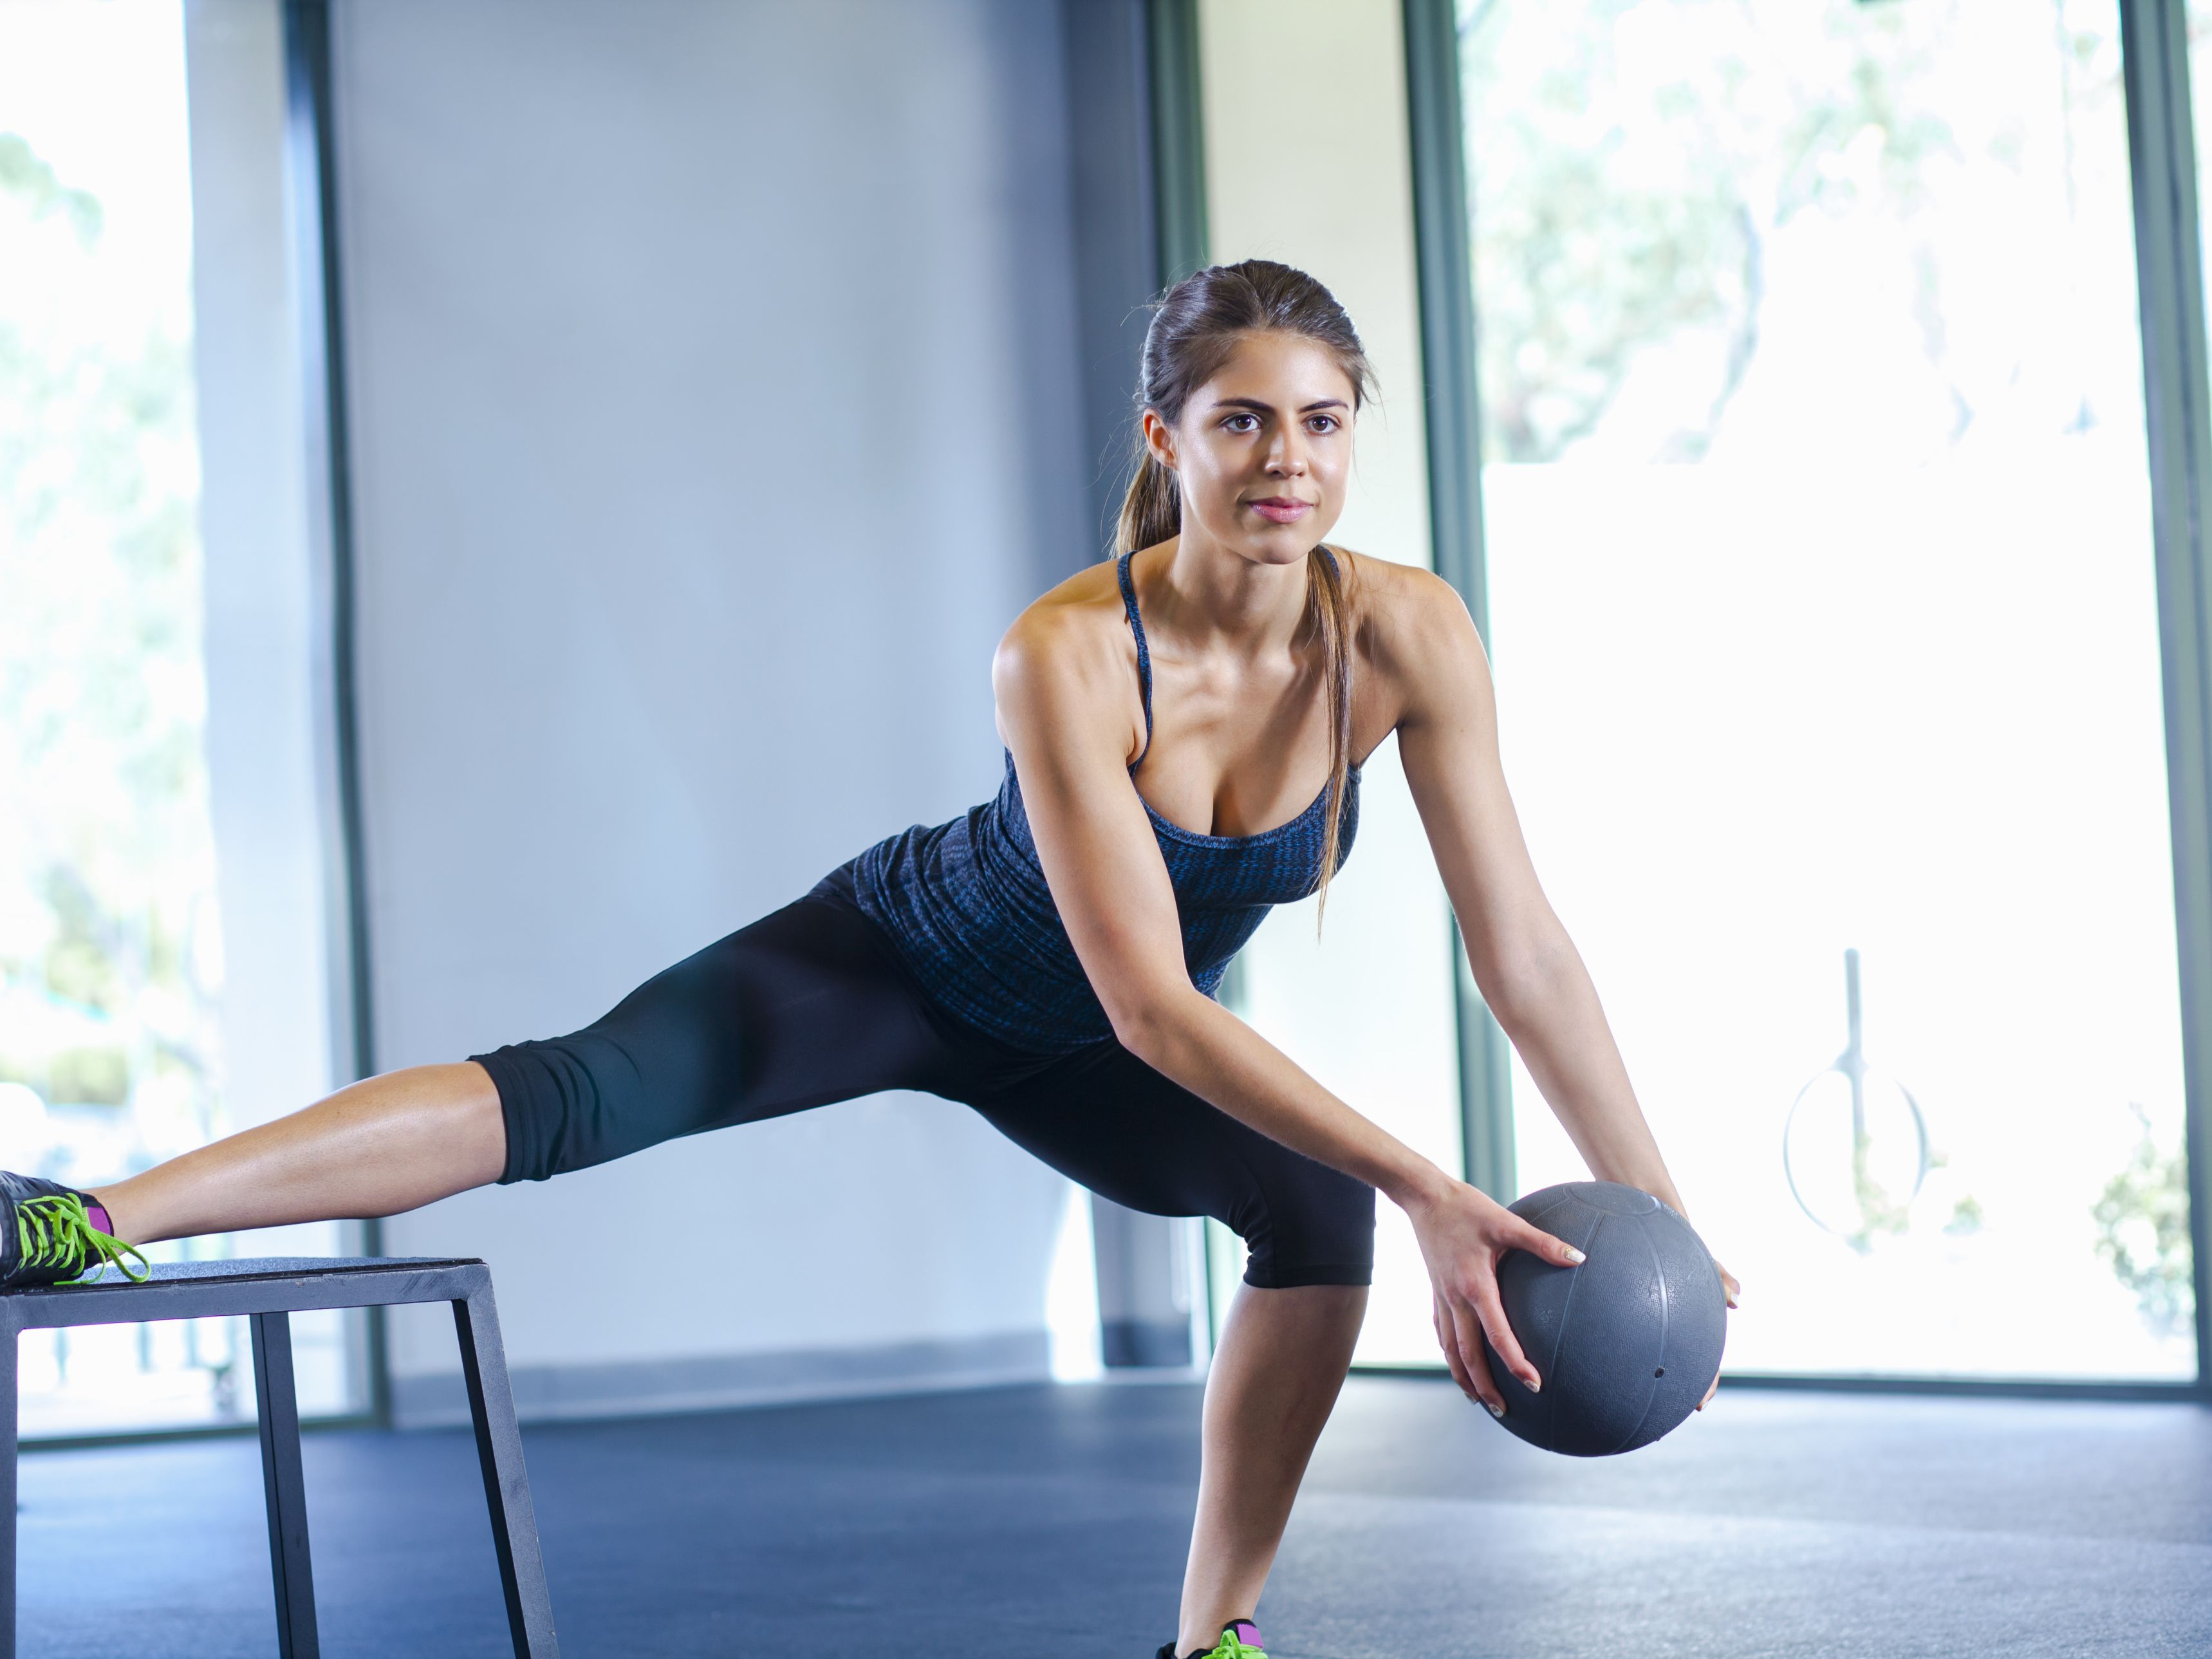 How To Calculate The Calories You Burn During Exercise